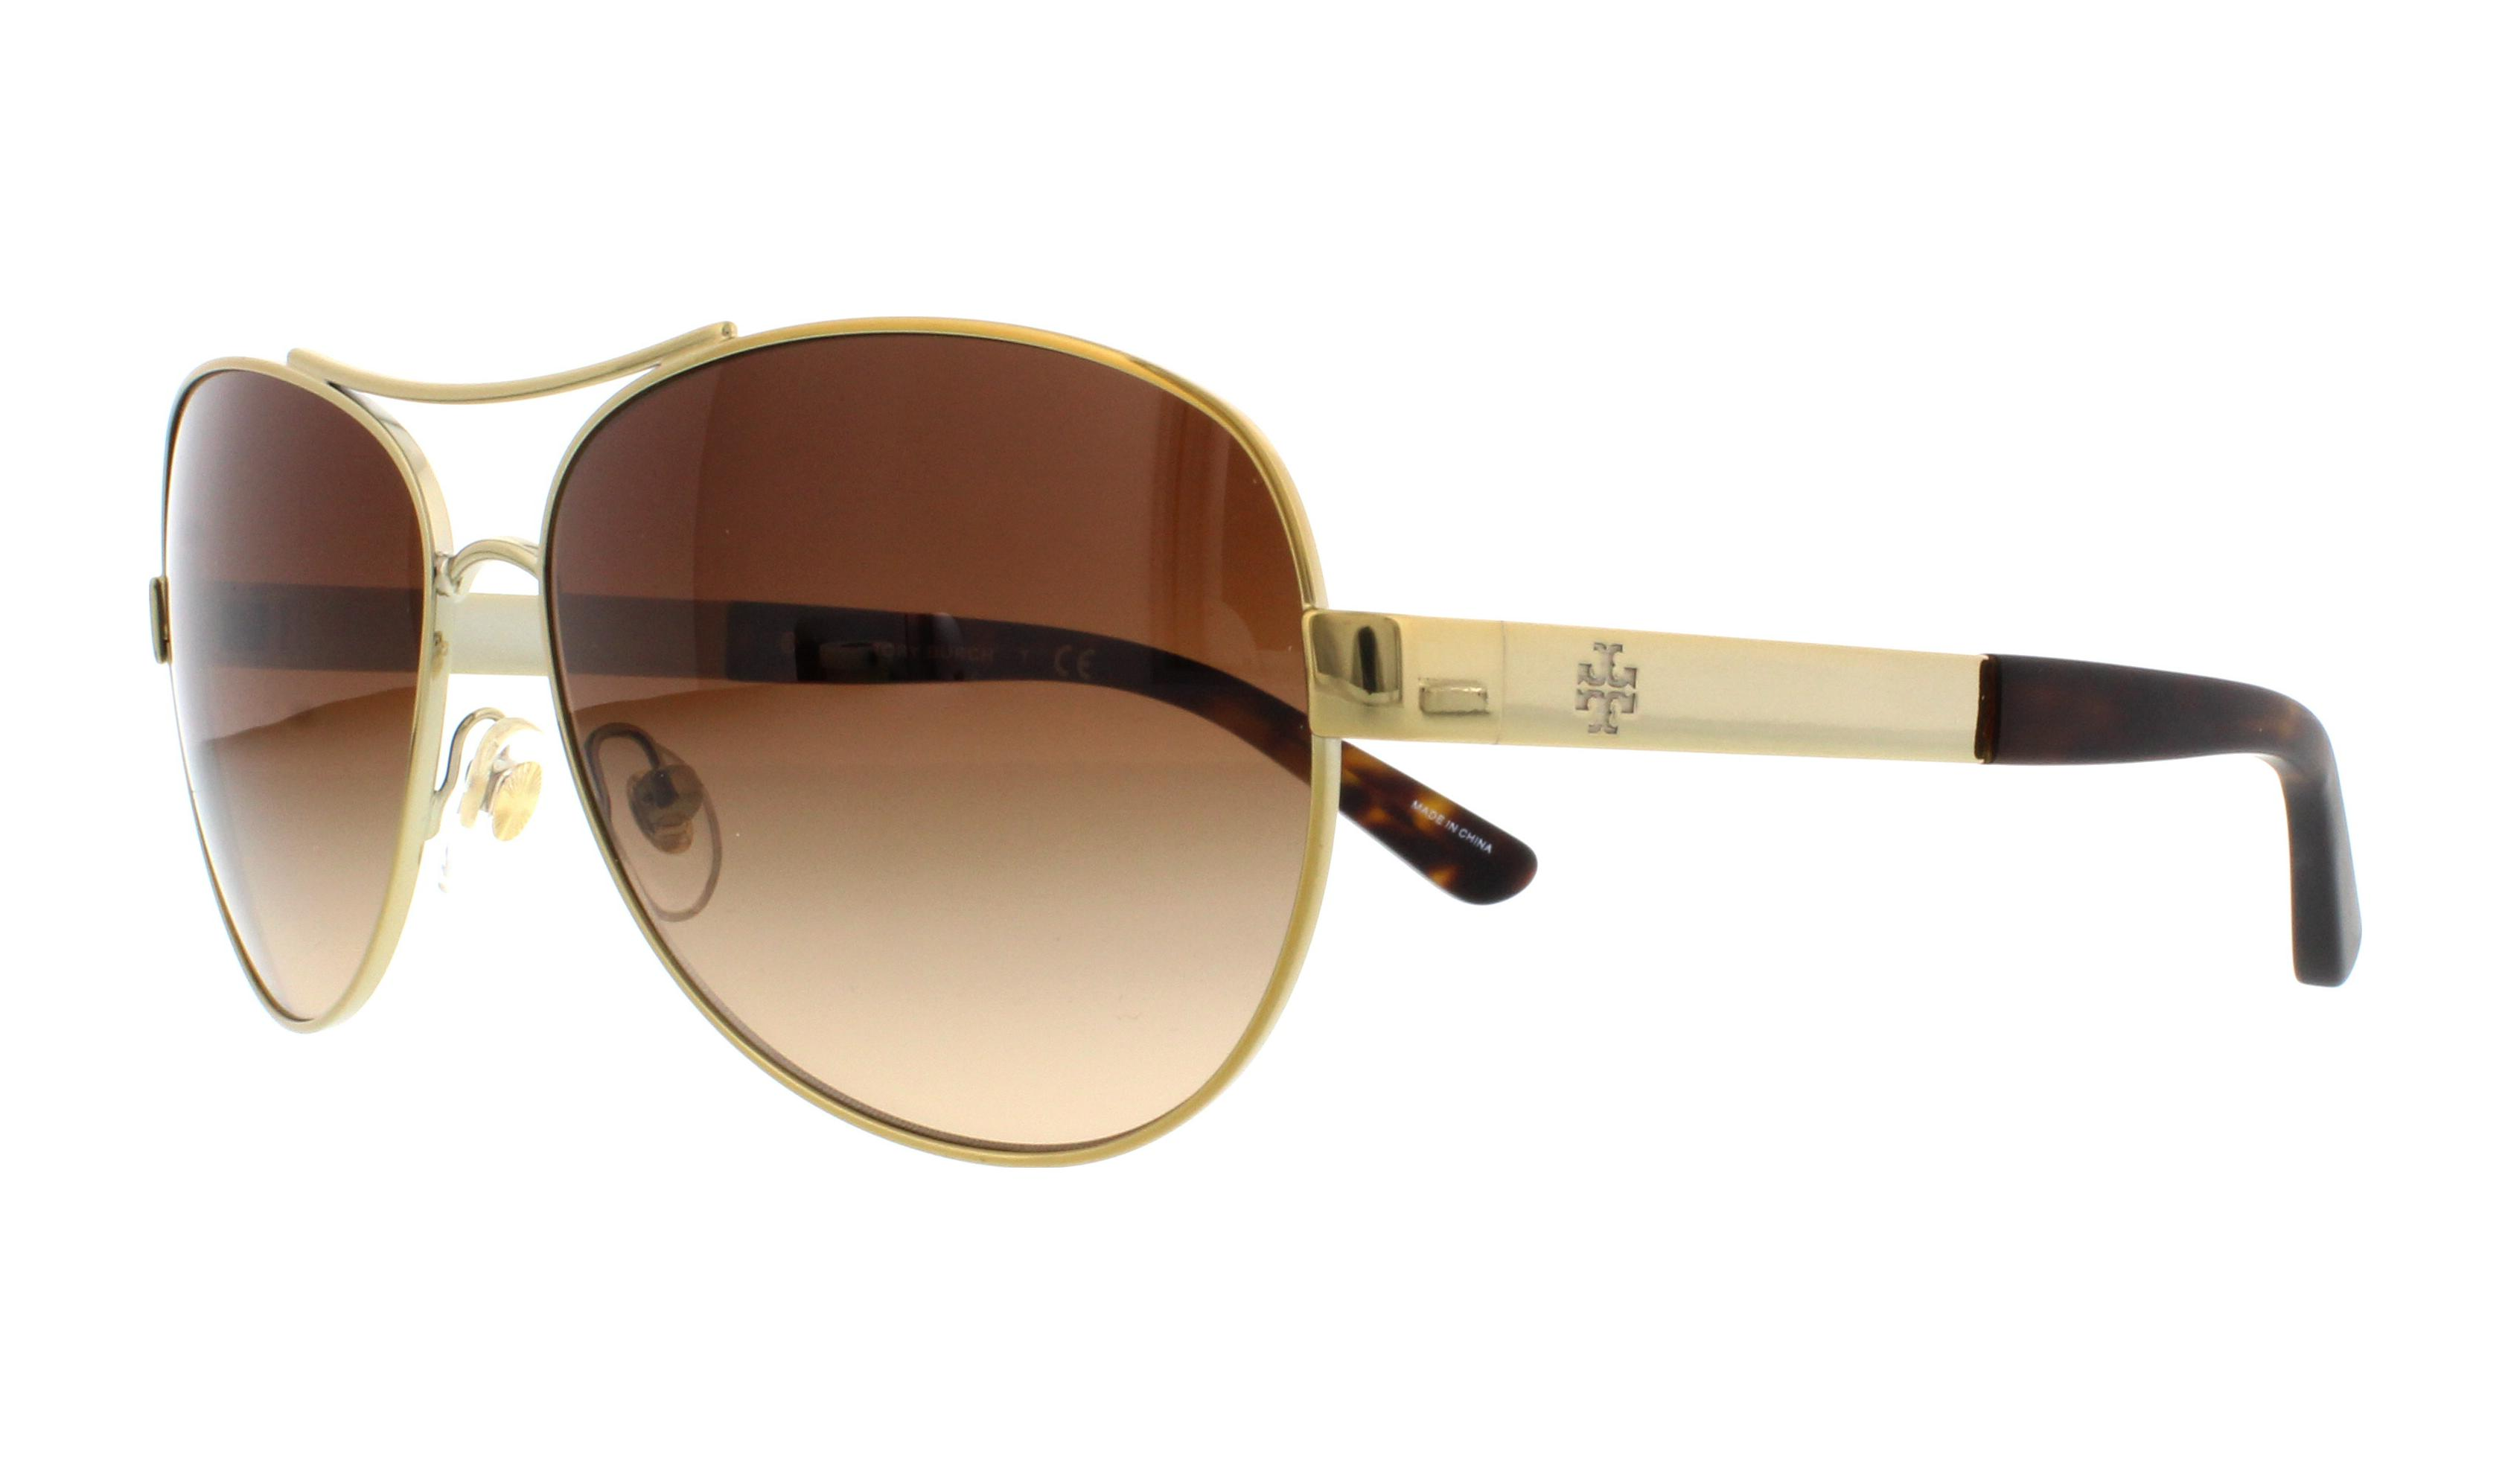 1a8932324a0 Designer Frames Outlet. Tory Burch TY6047